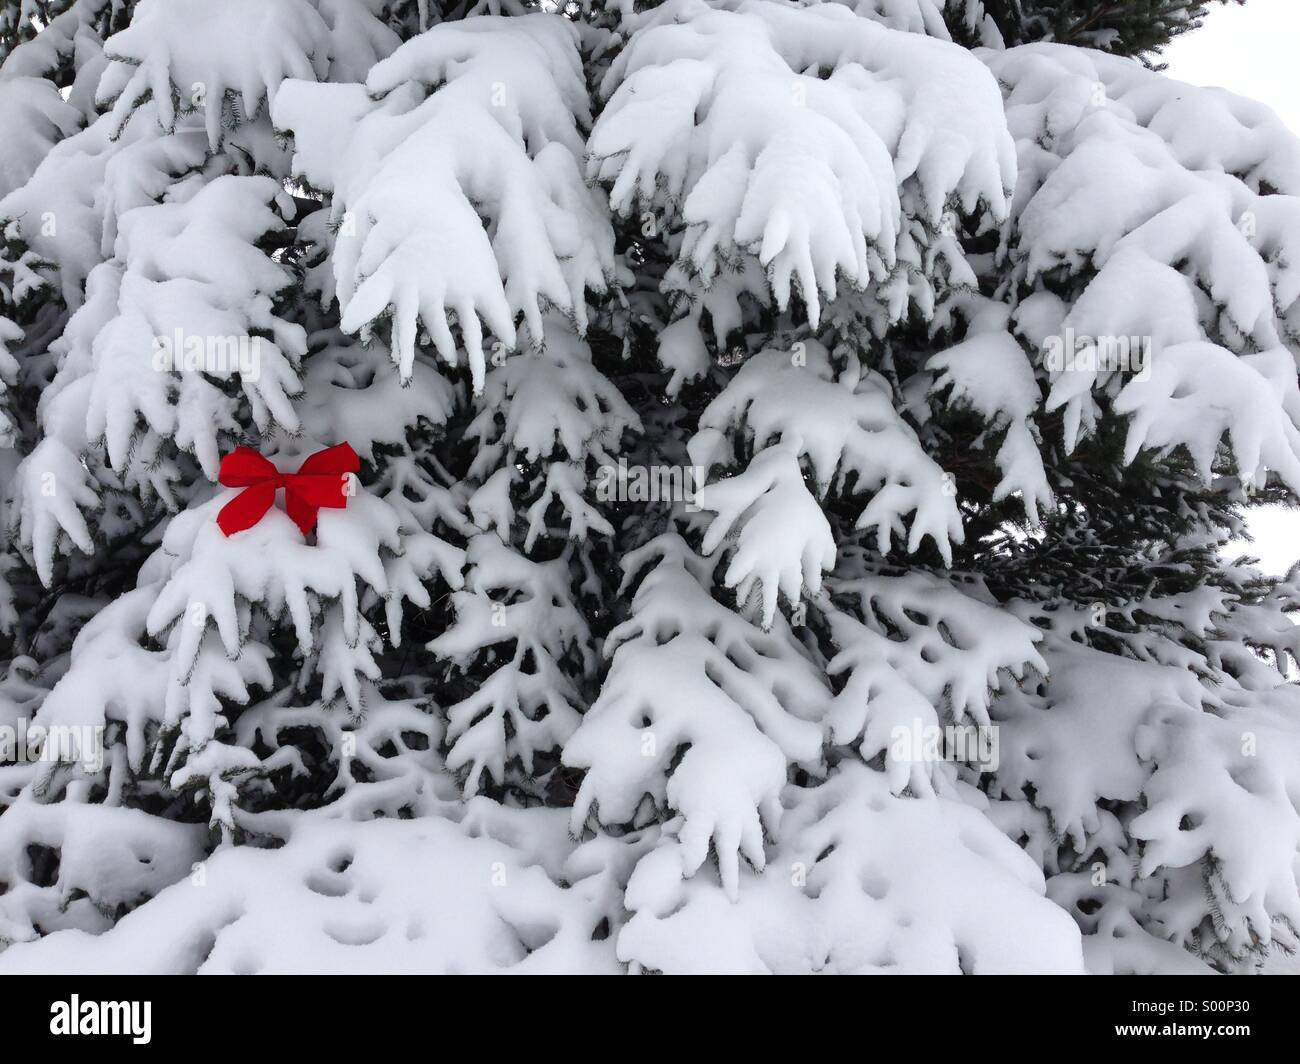 A red bow on the fresh snow of a pine tree. - Stock Image